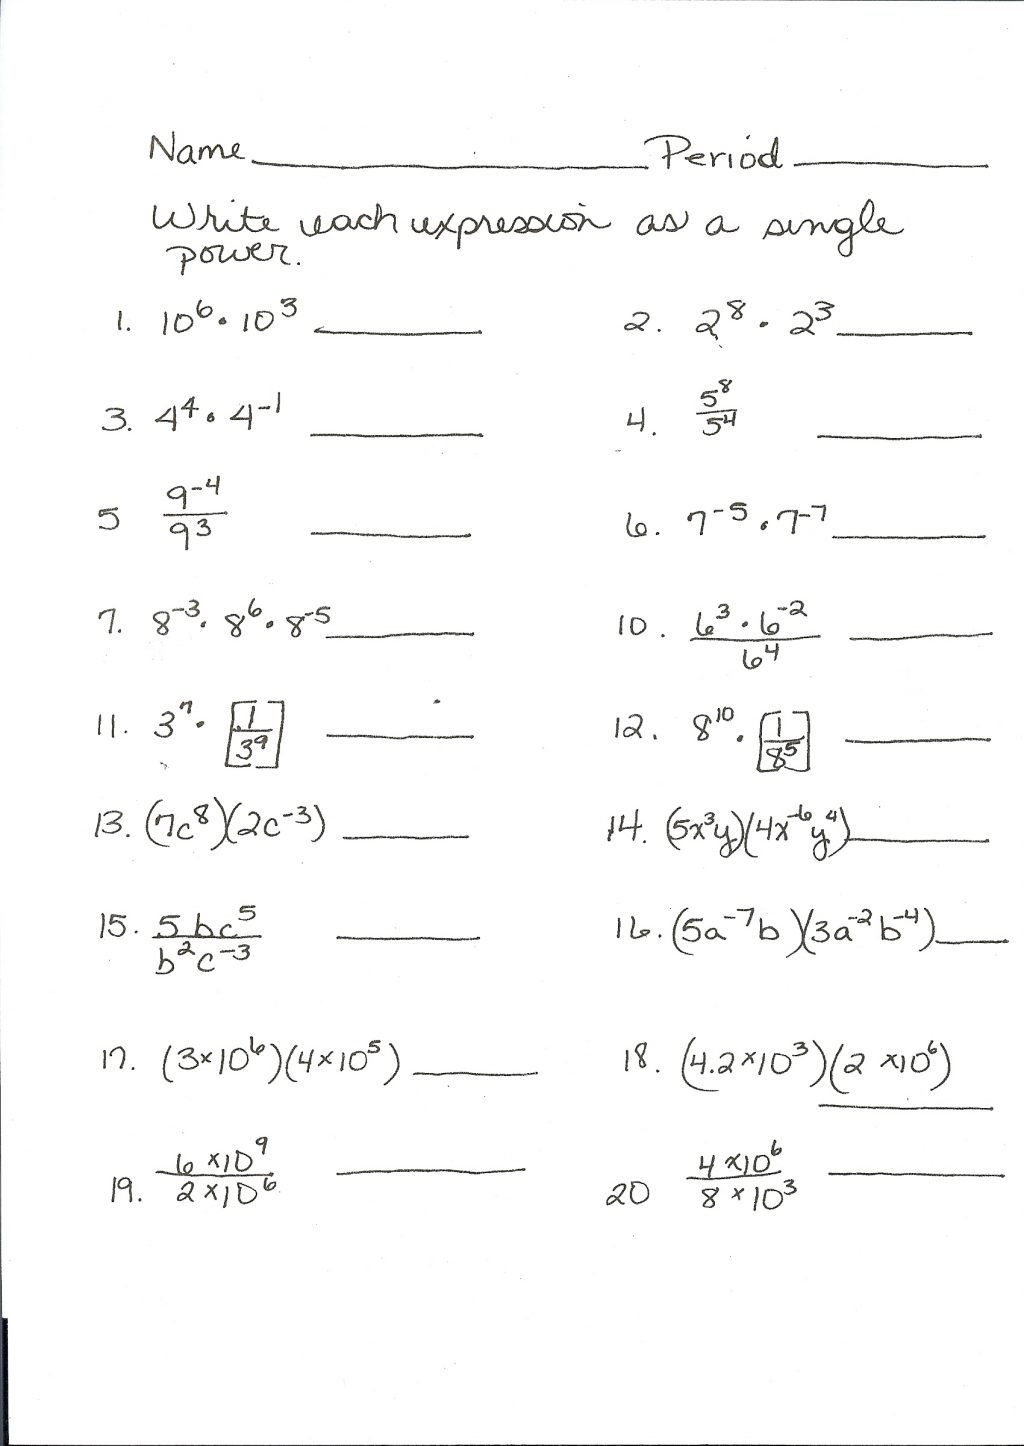 3rd Grade Reading Staar Test Practice Worksheets For